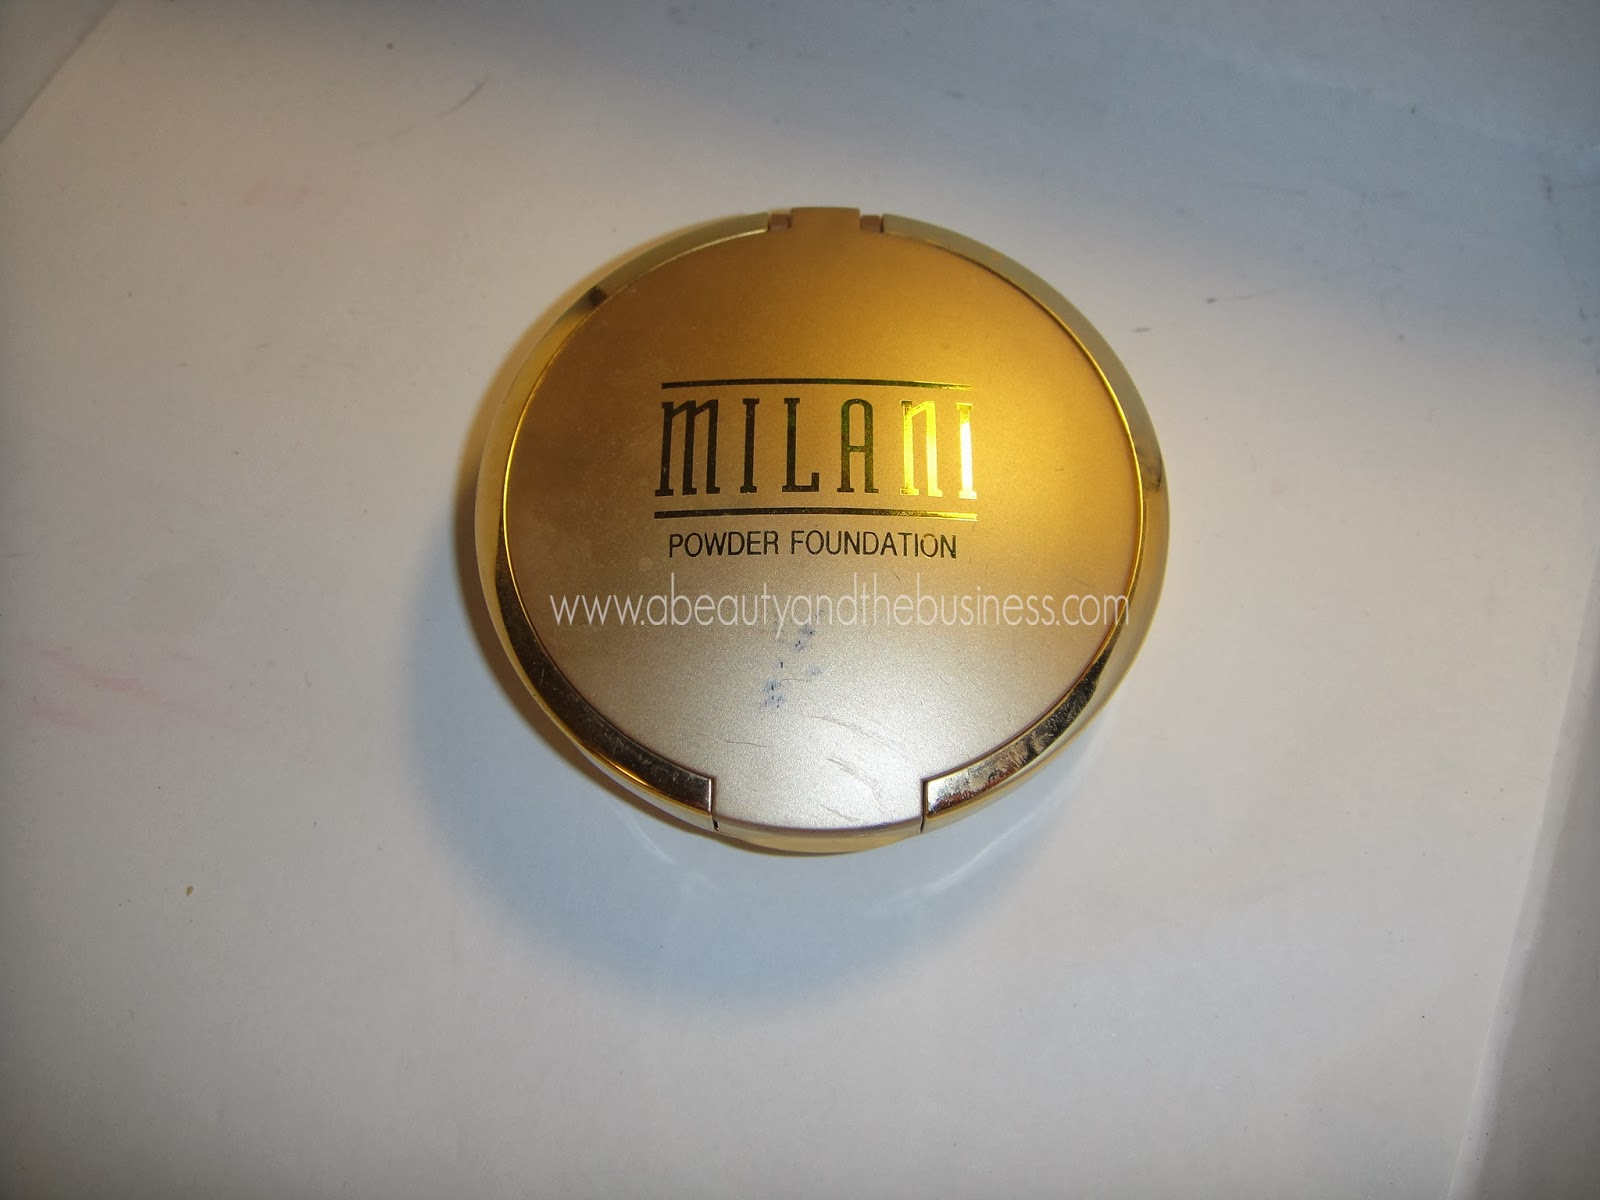 milani, milani even touch powder foundation review, powder foundation, powder foundation review, milani even touch powder foundation shell, milani powder foundation